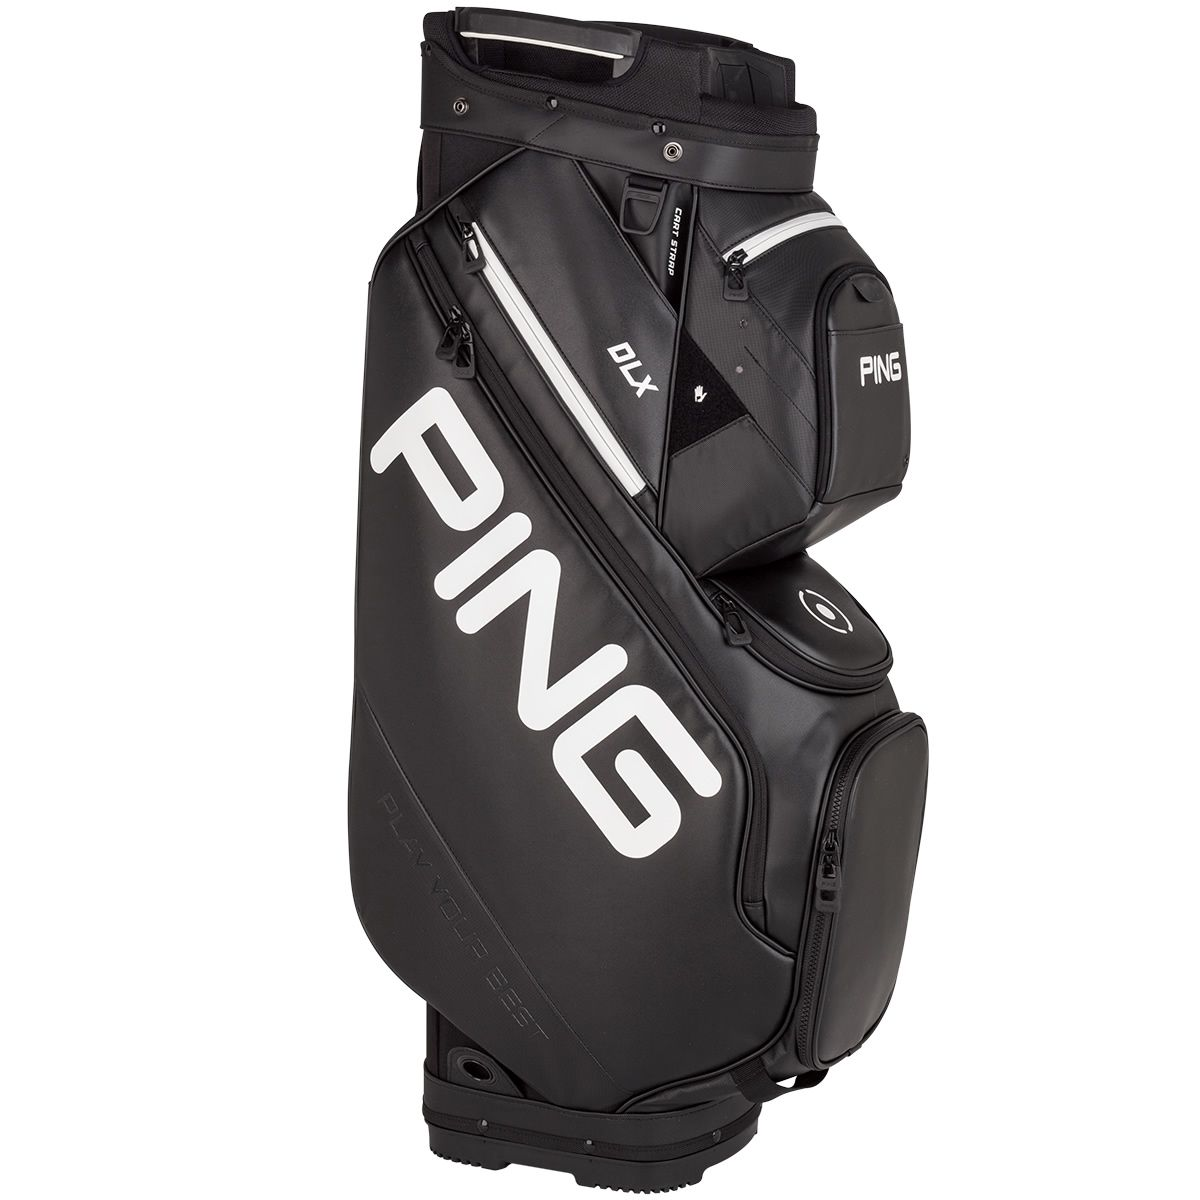 Ping 2020 DLX Golf Cart Bag